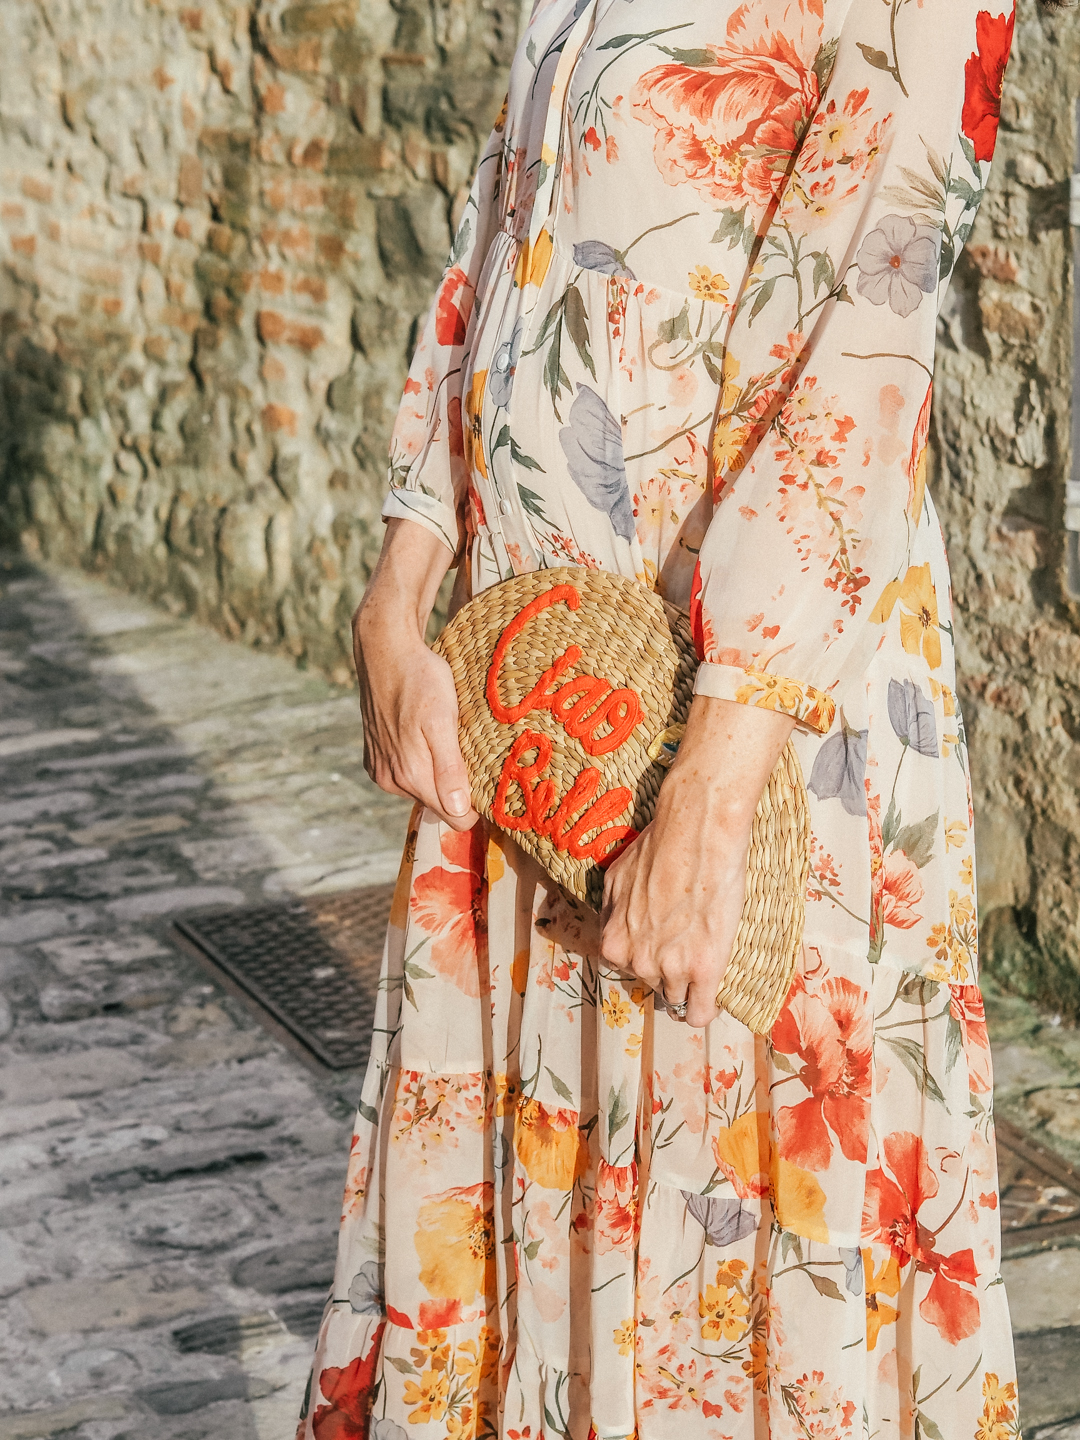 Floral dress and Ciao Bella bag